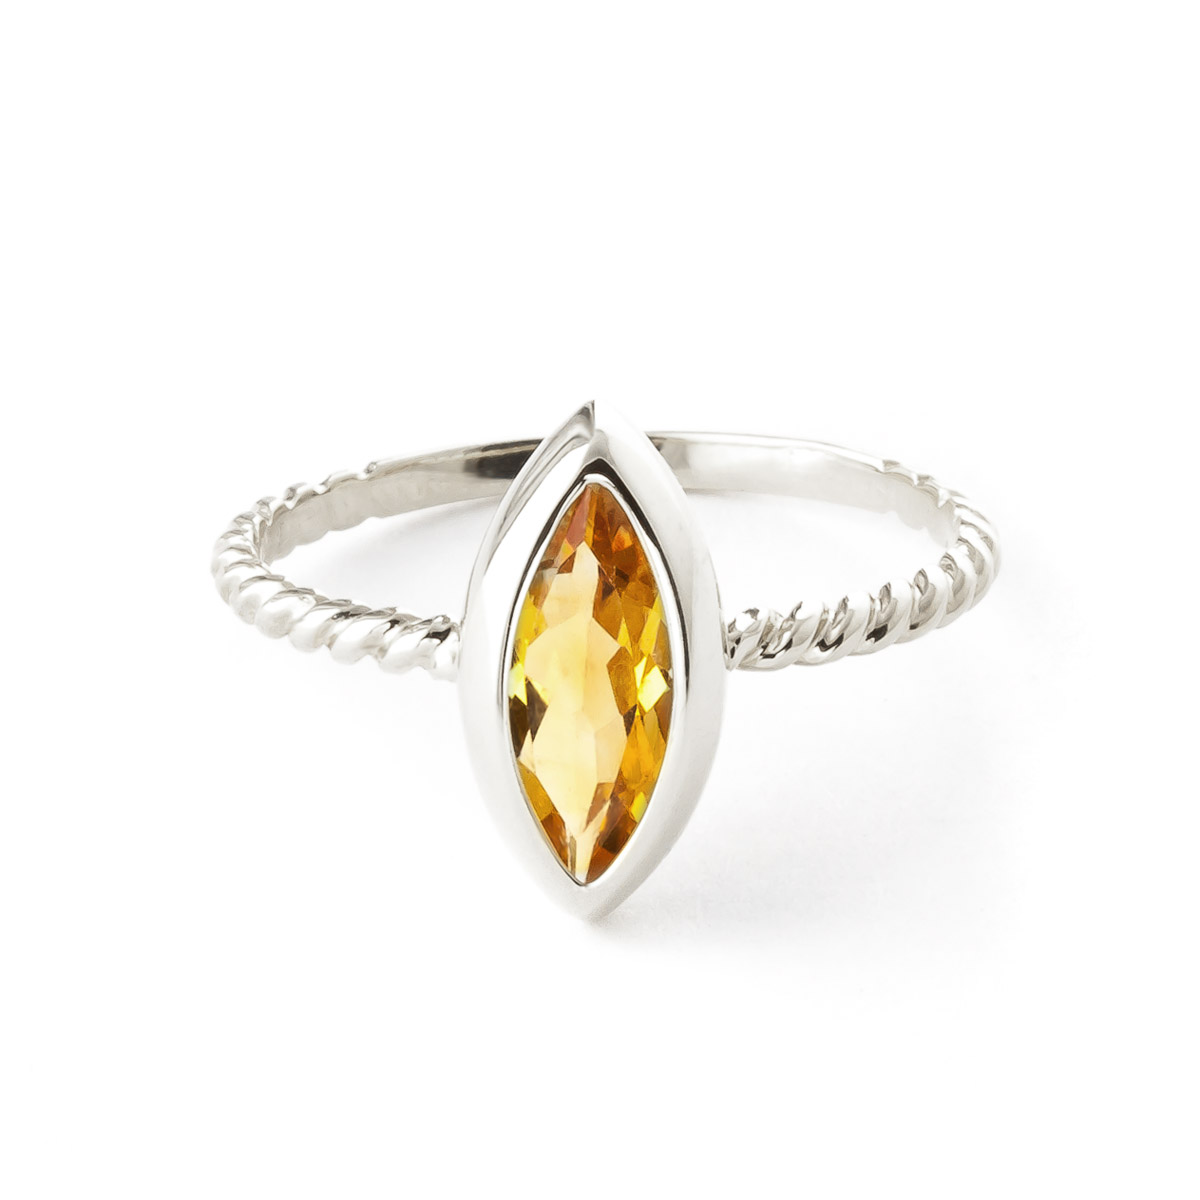 Marquise Cut Citrine Ring 1.7ct in 9ct White Gold